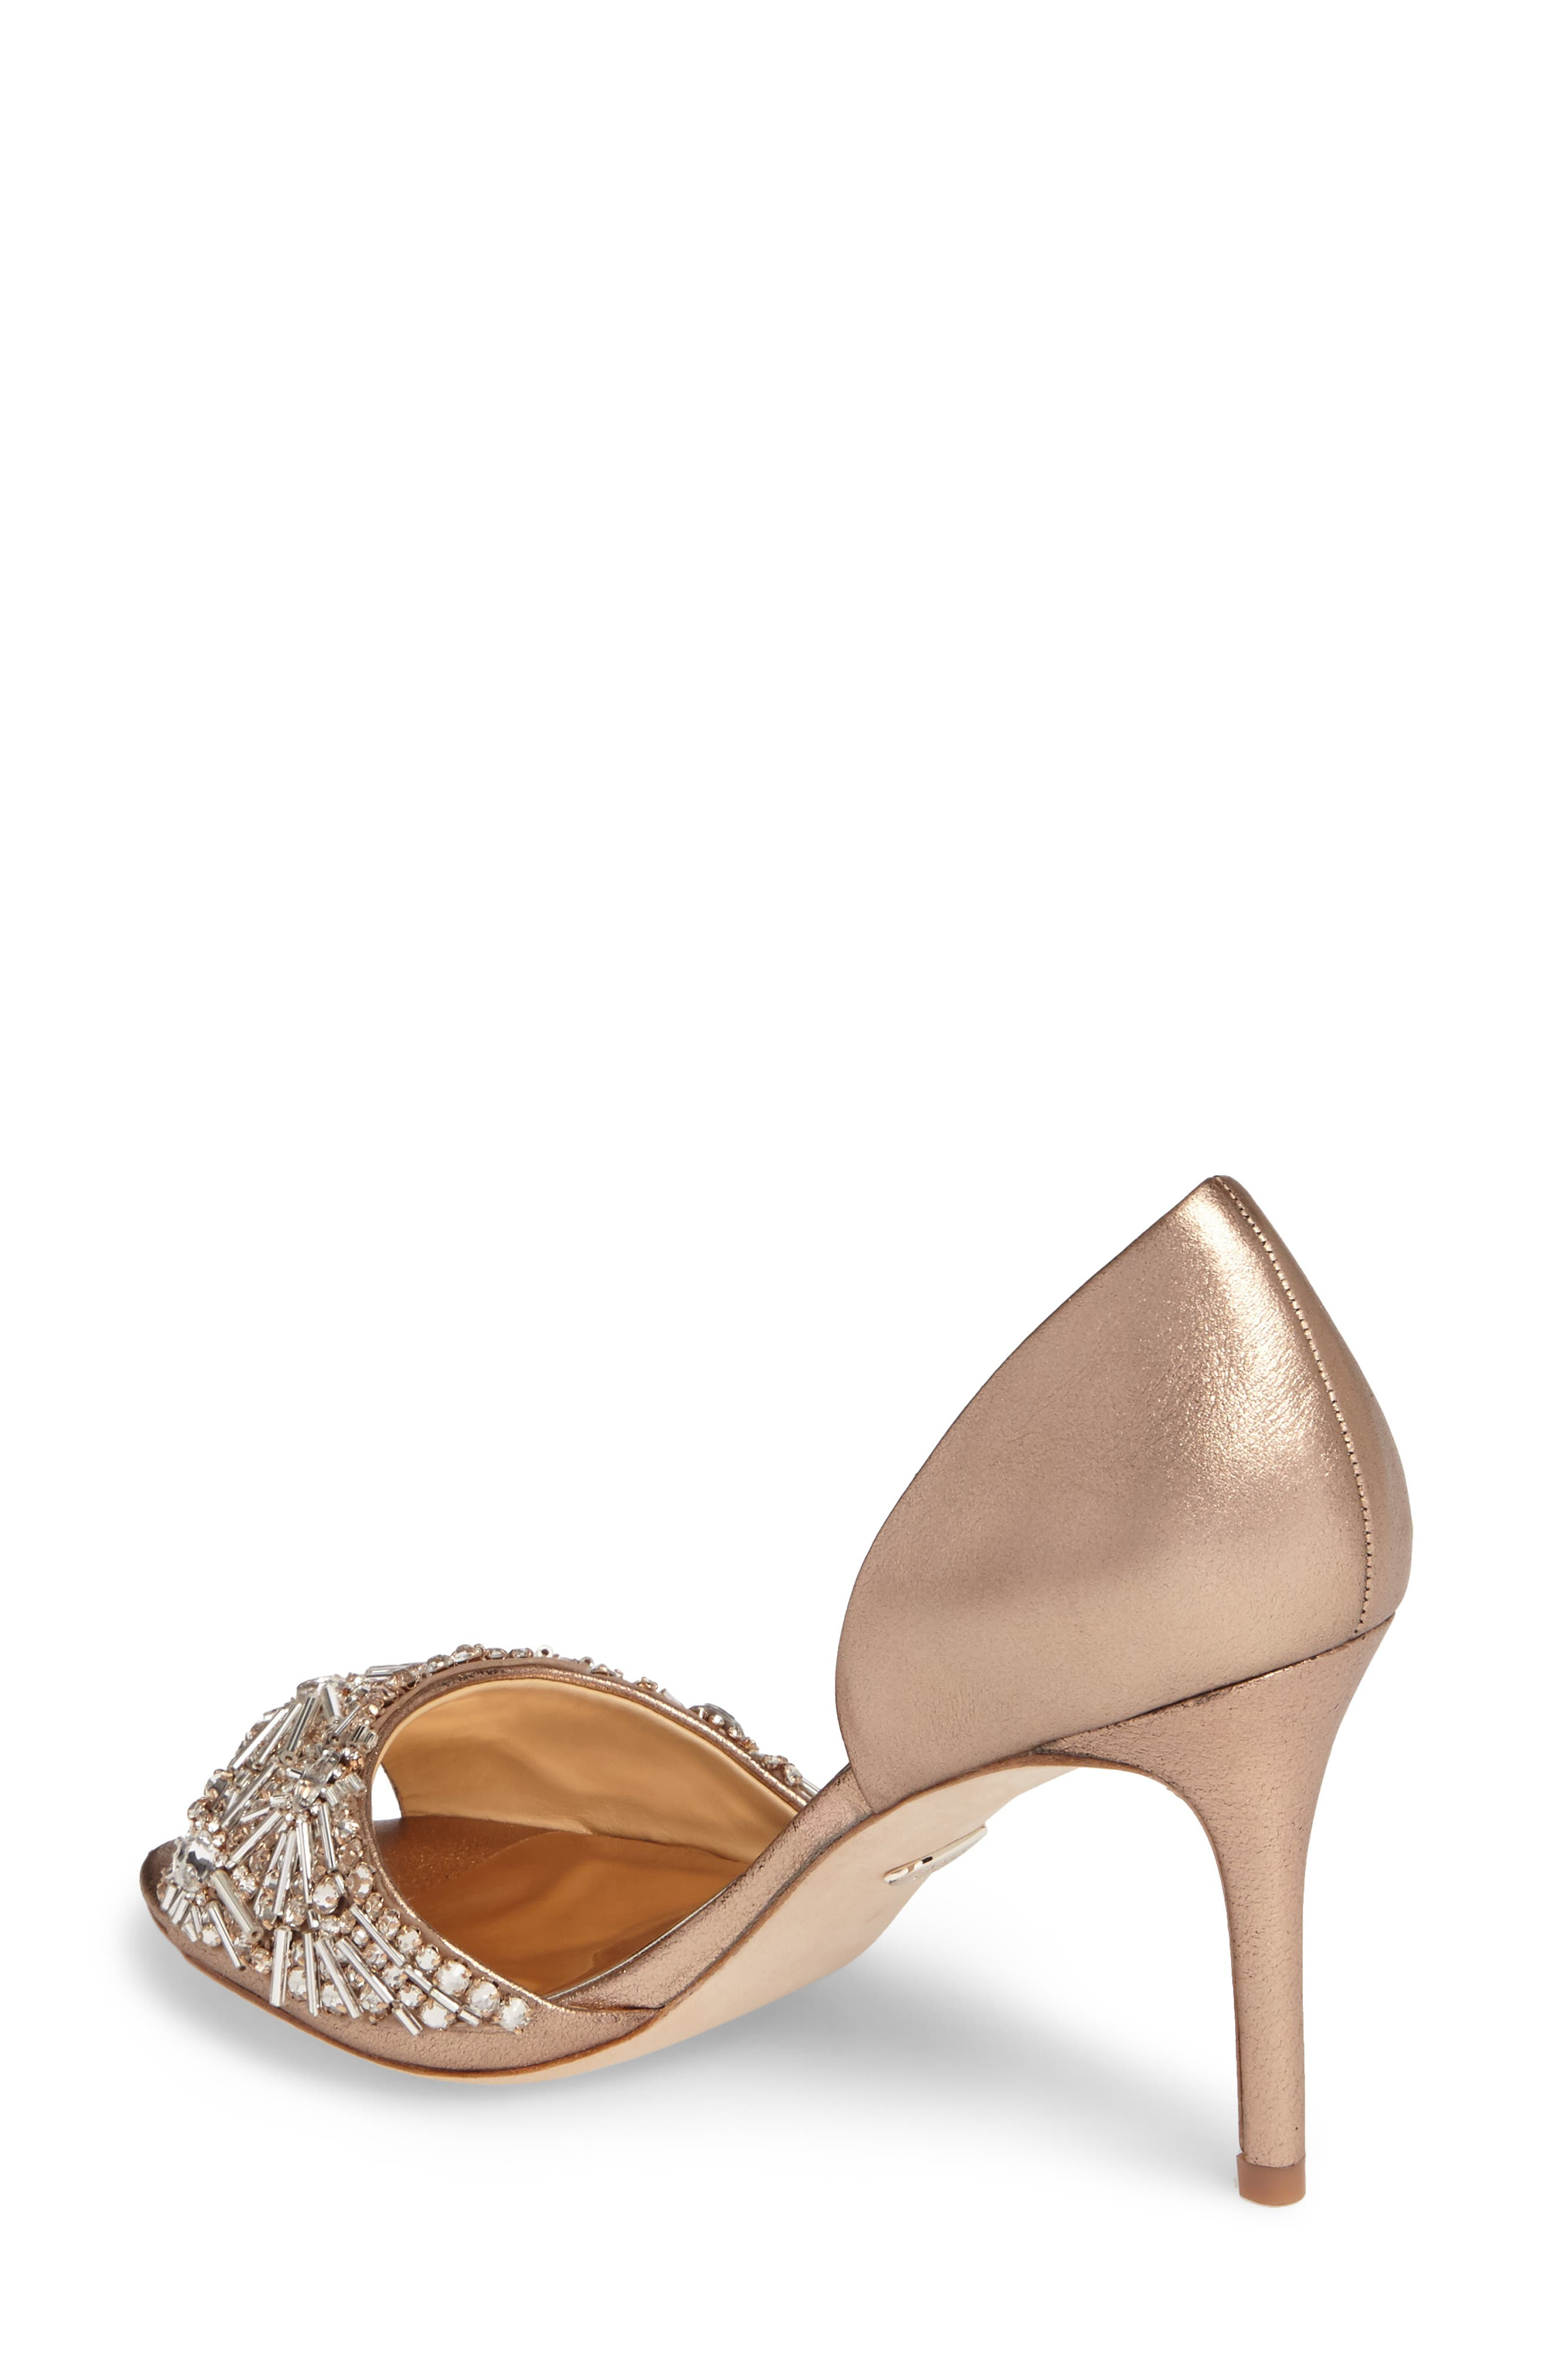 Maria Embellished d'Orsay Pump,                             Alternate thumbnail 11, color,